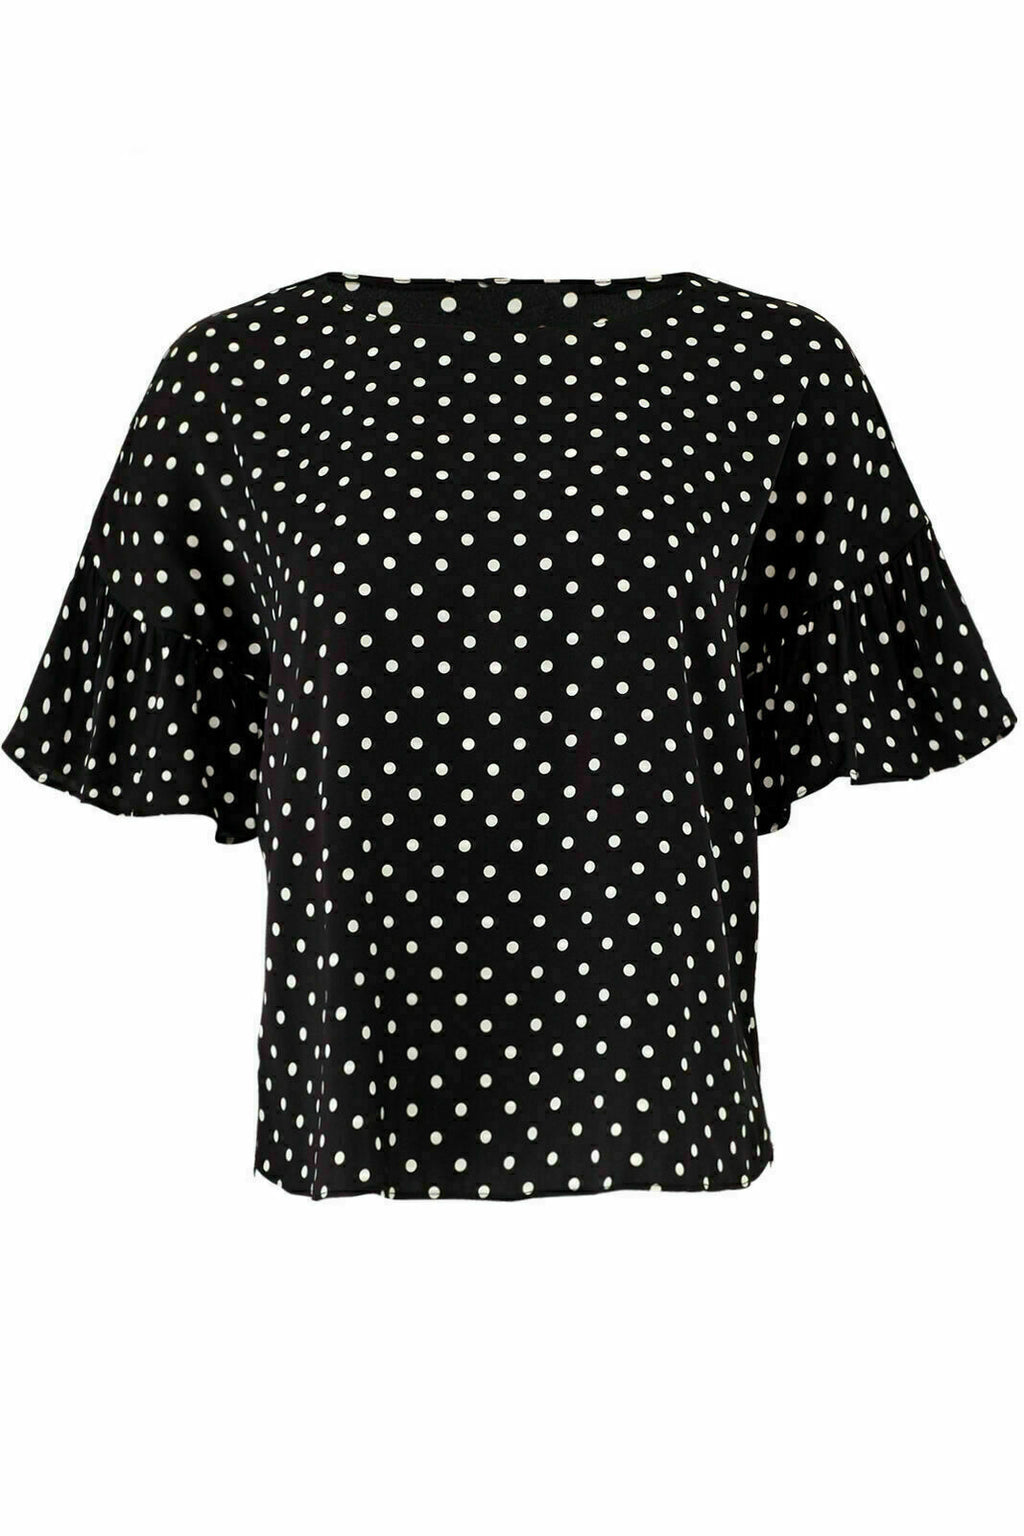 Black Blouse Small Polka Dot Ruffle-